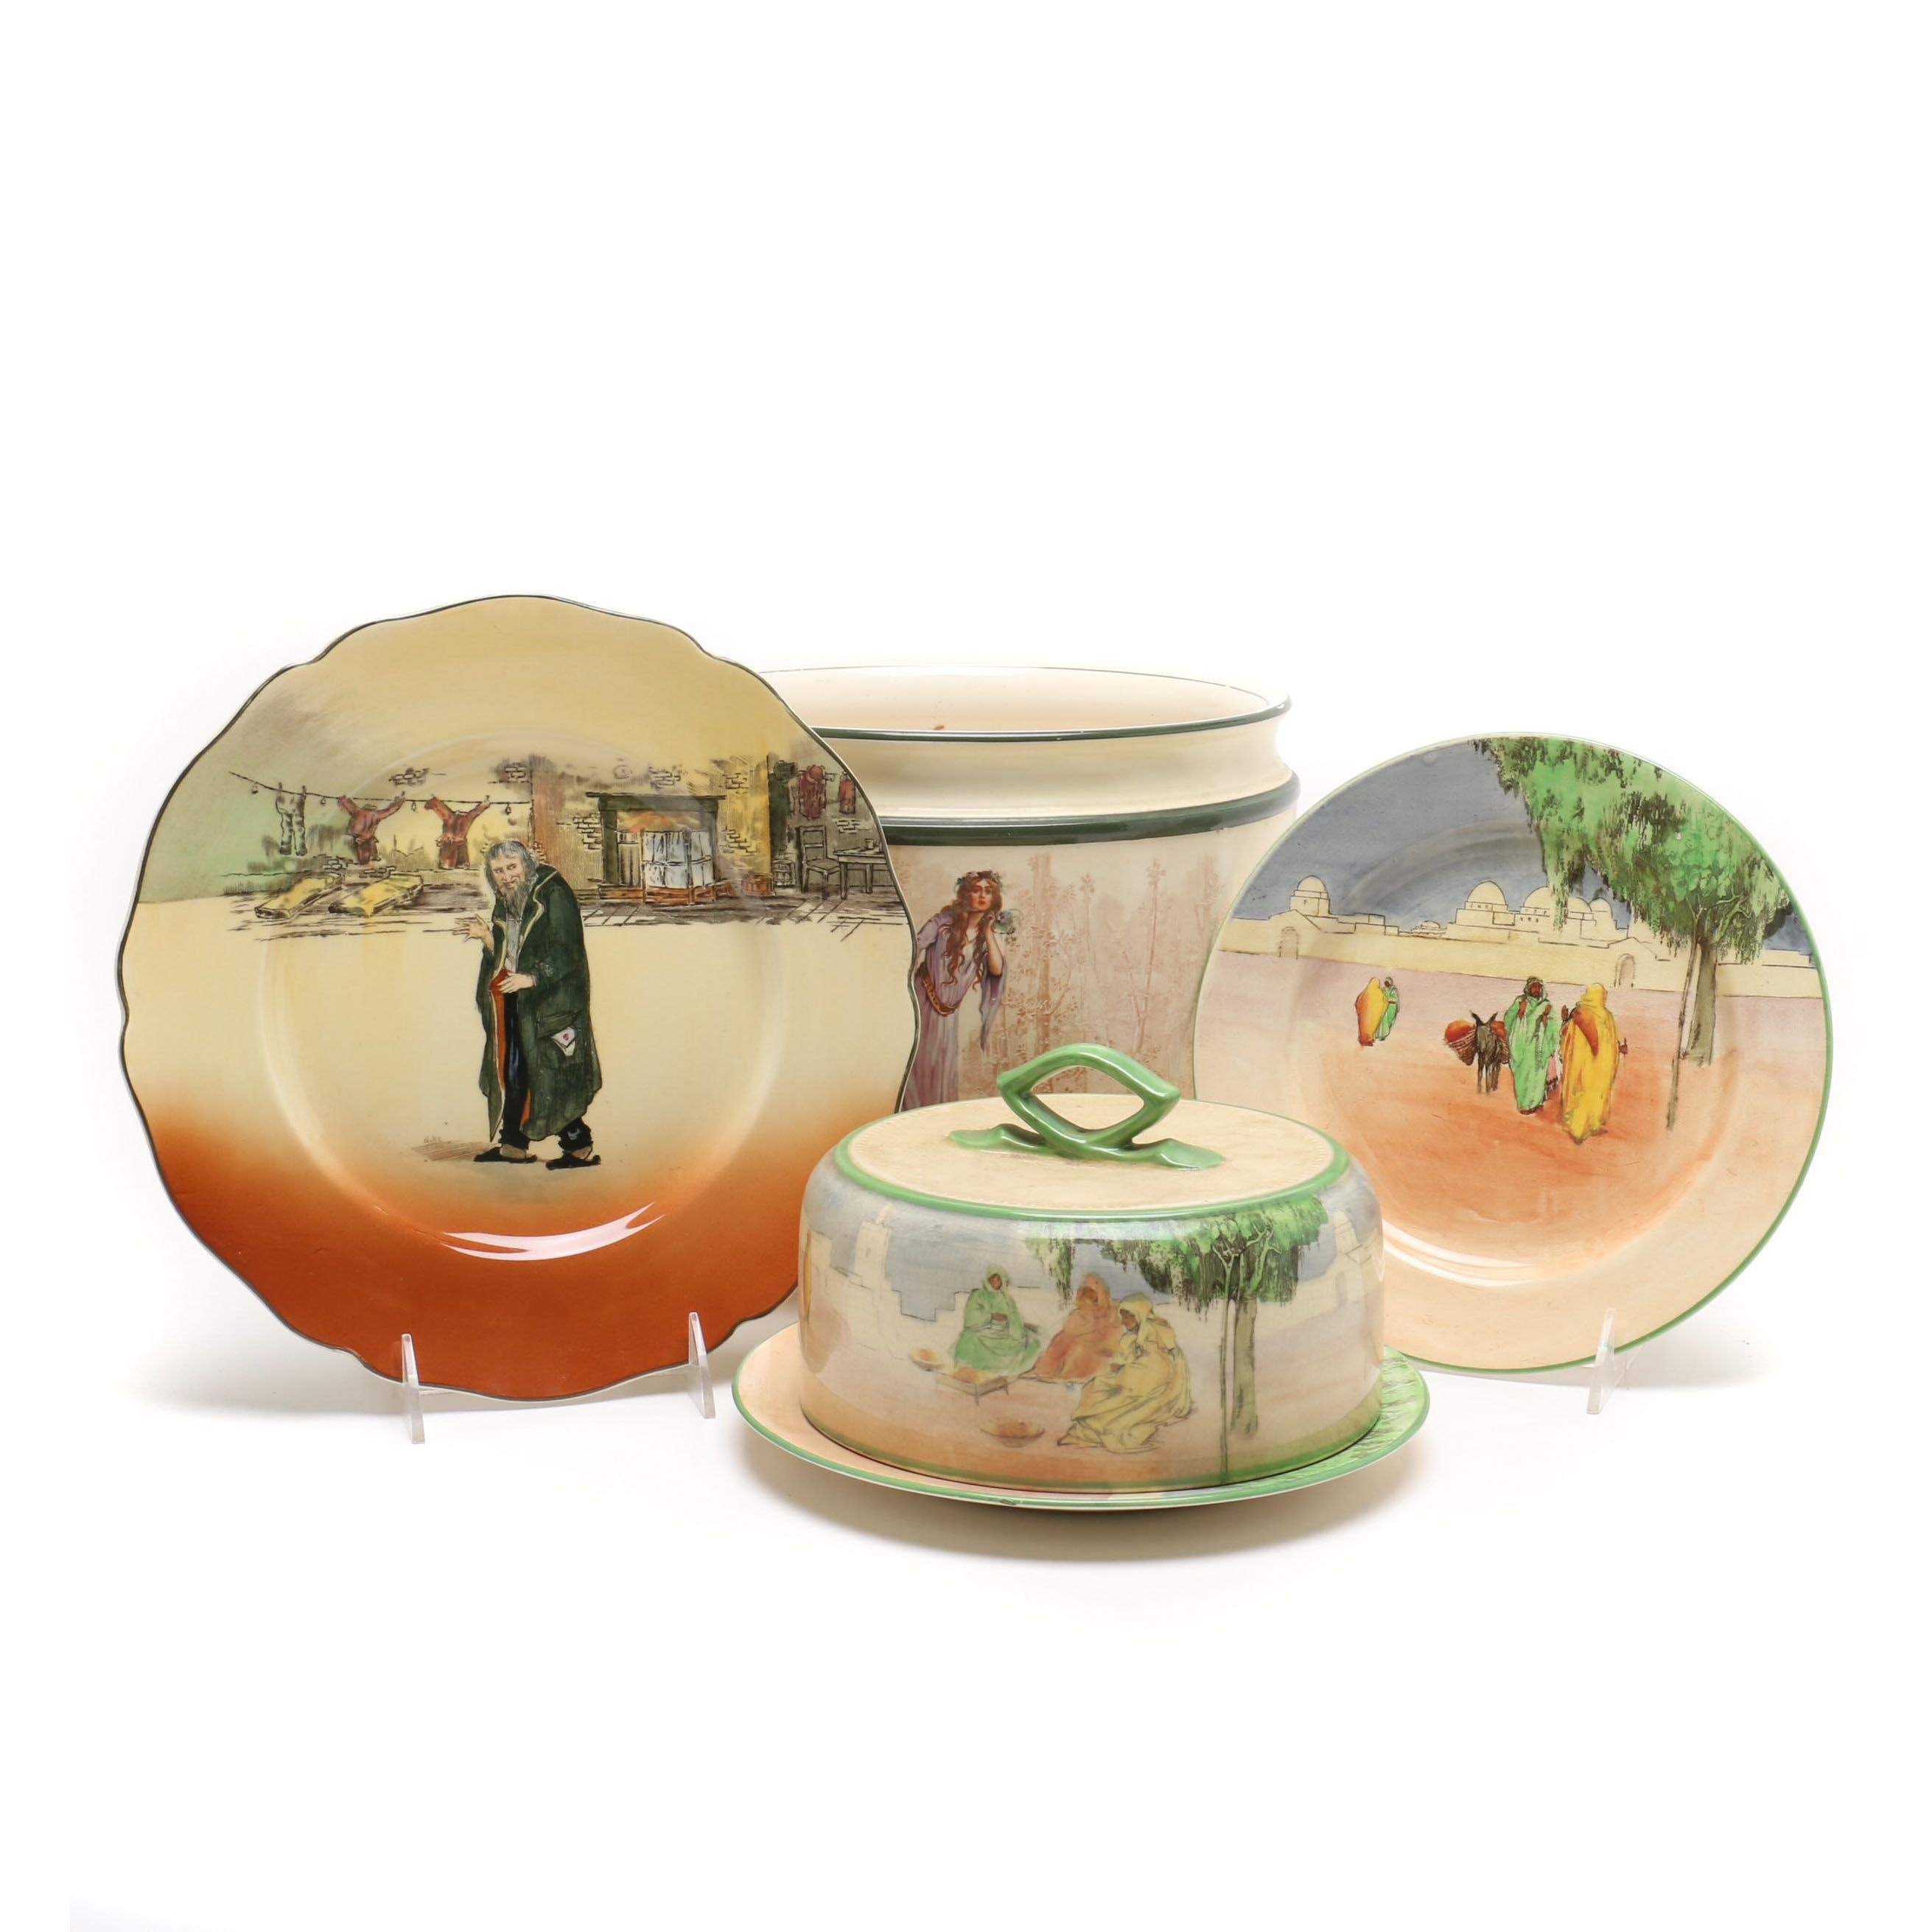 Royal Doulton Planter and Tableware including Dickens Ware